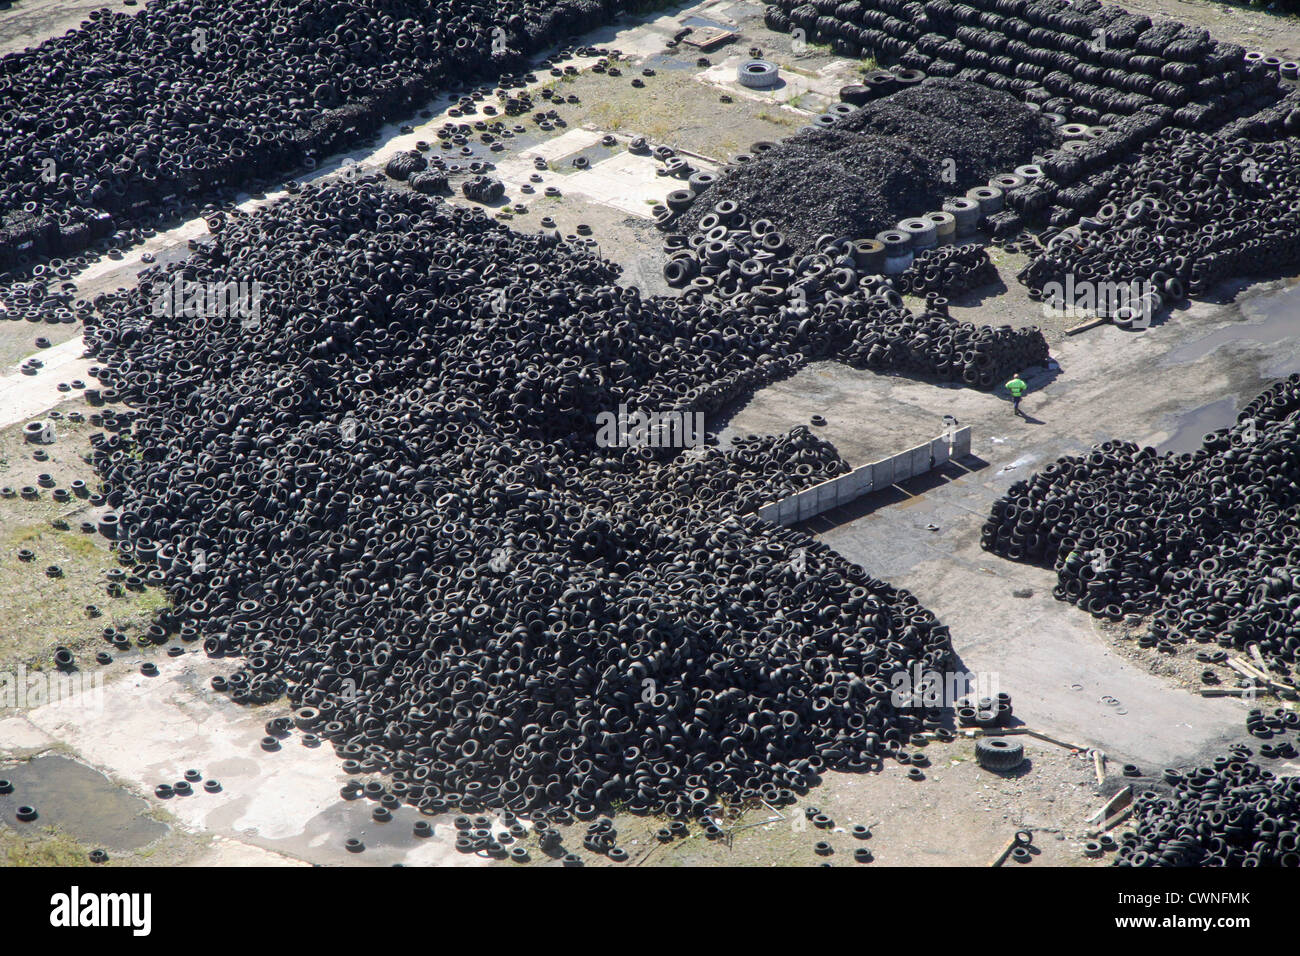 aerial view of a pile of car and other vehicle tyres tires - Stock Image